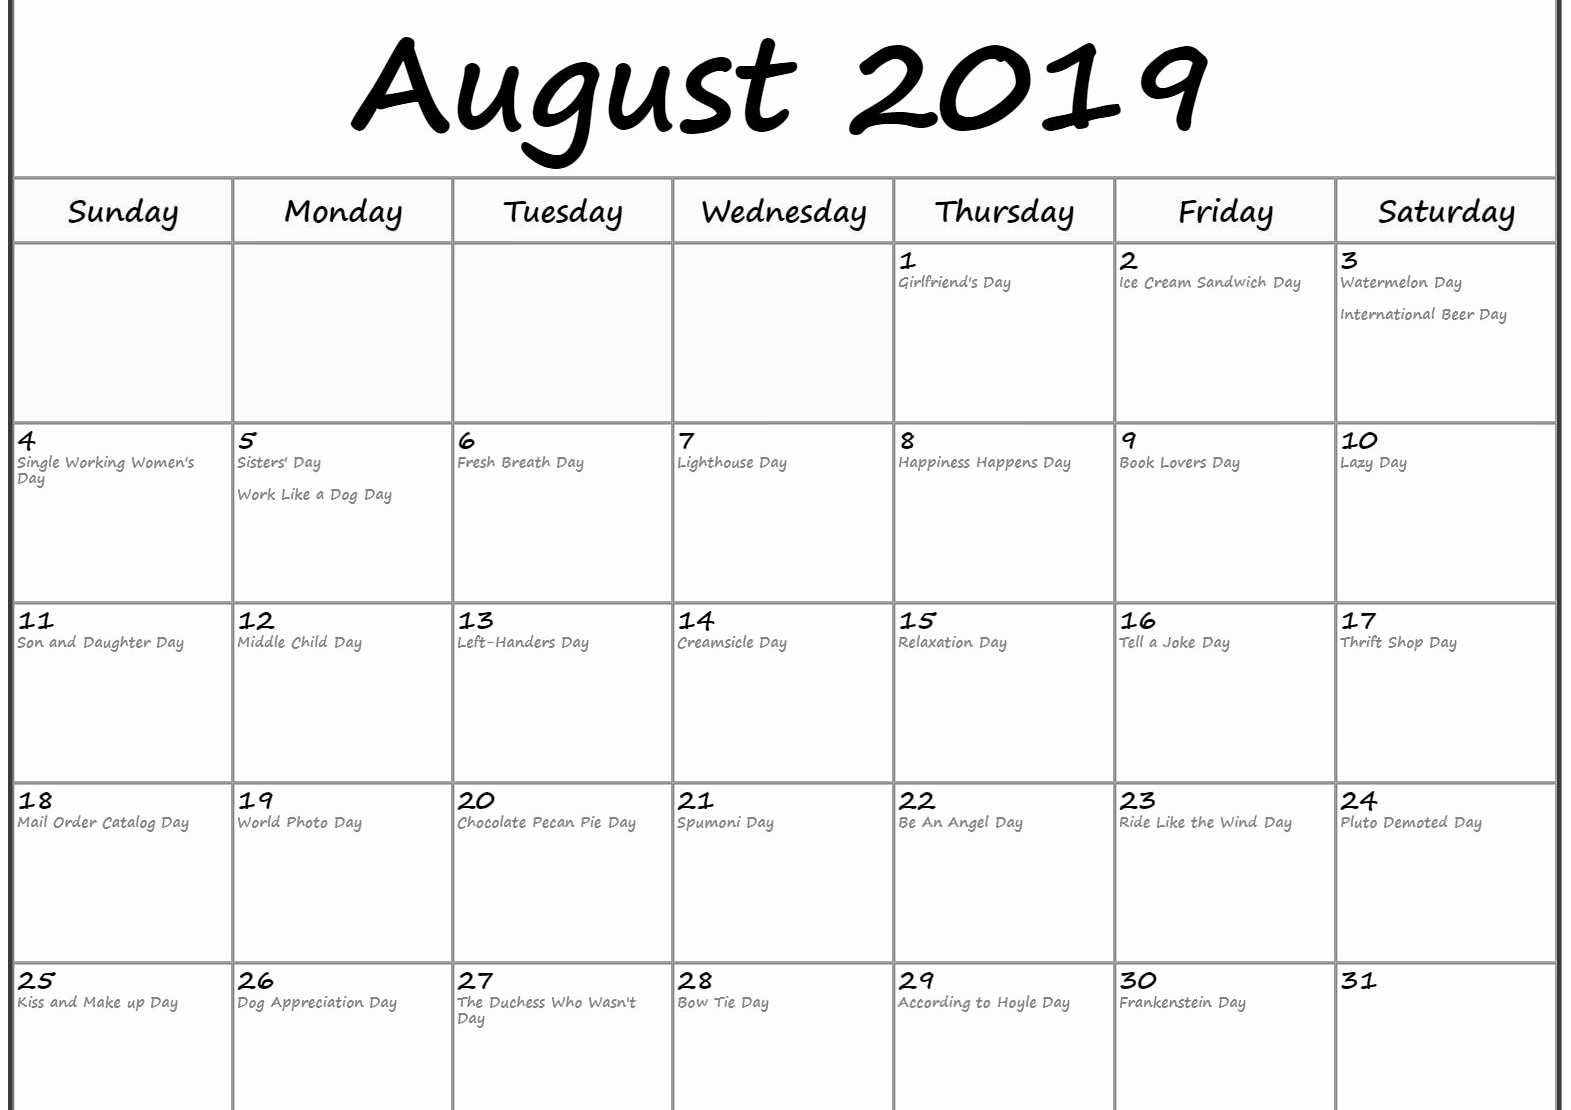 August 2019 Calendar With Holidays.August 2019 Calendar With Holidays